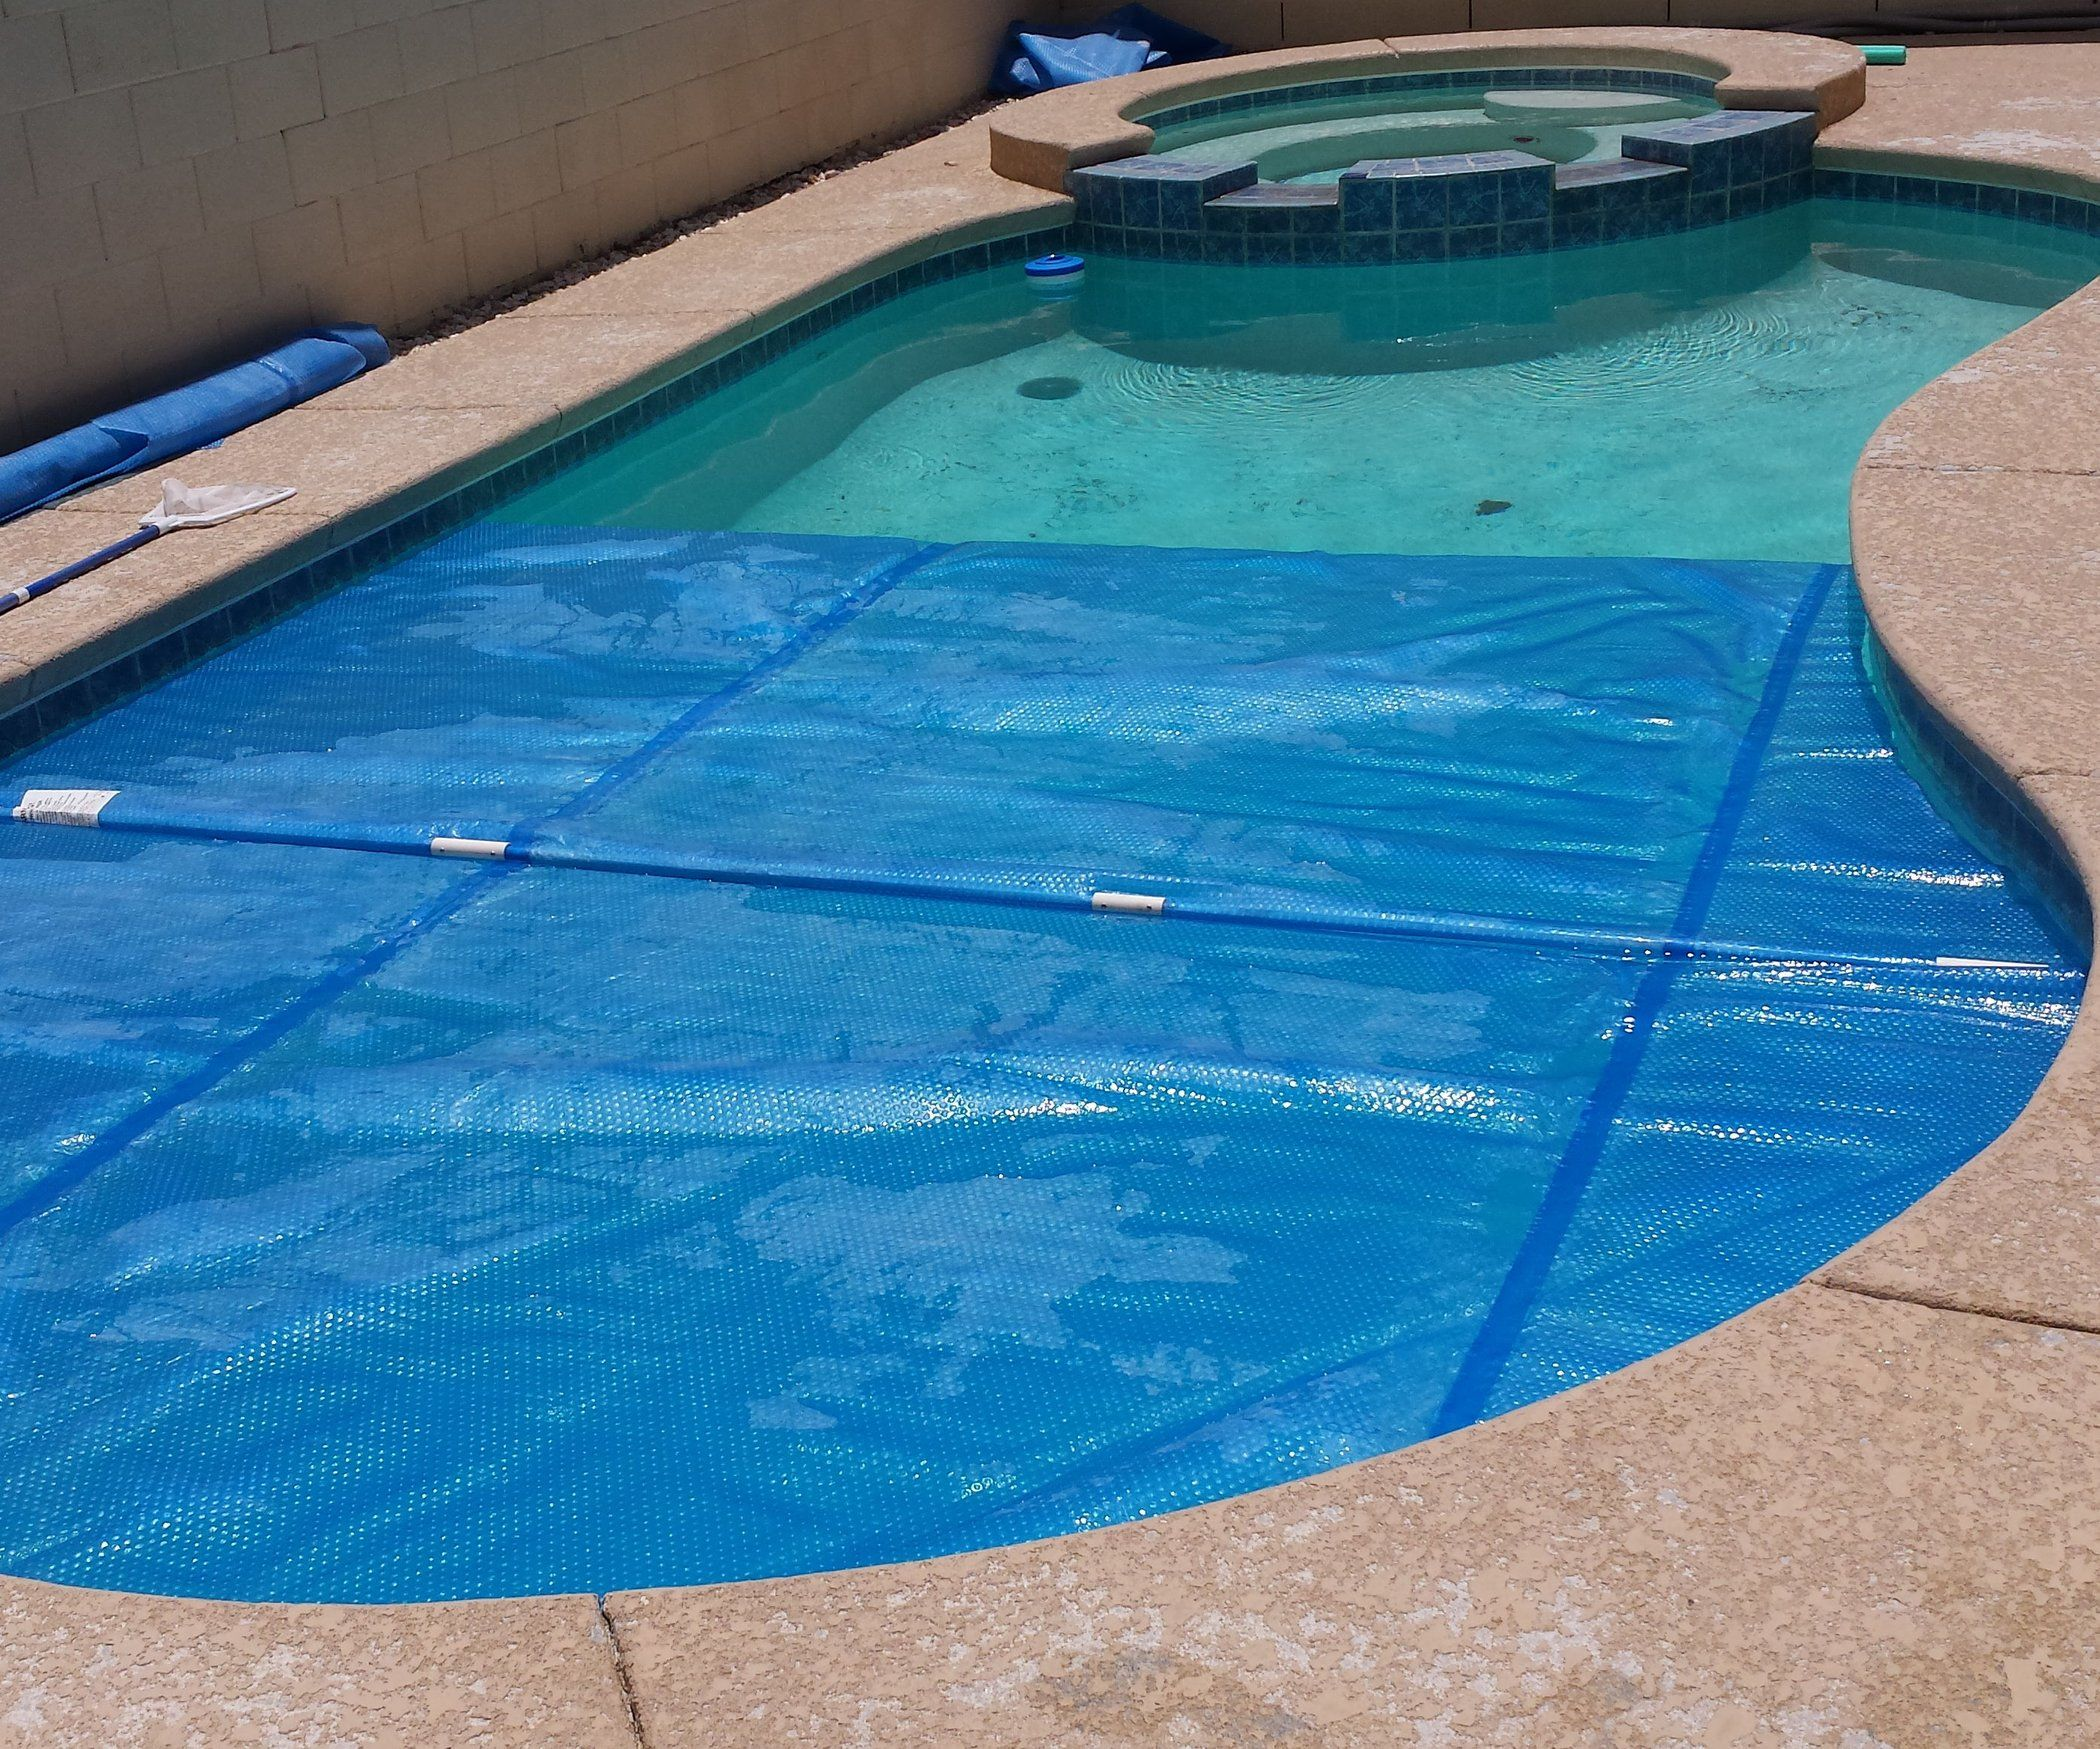 Make Your Own Swimming Pool Blanket Winder Solar pool cover, Pool cover, Pool cover roller